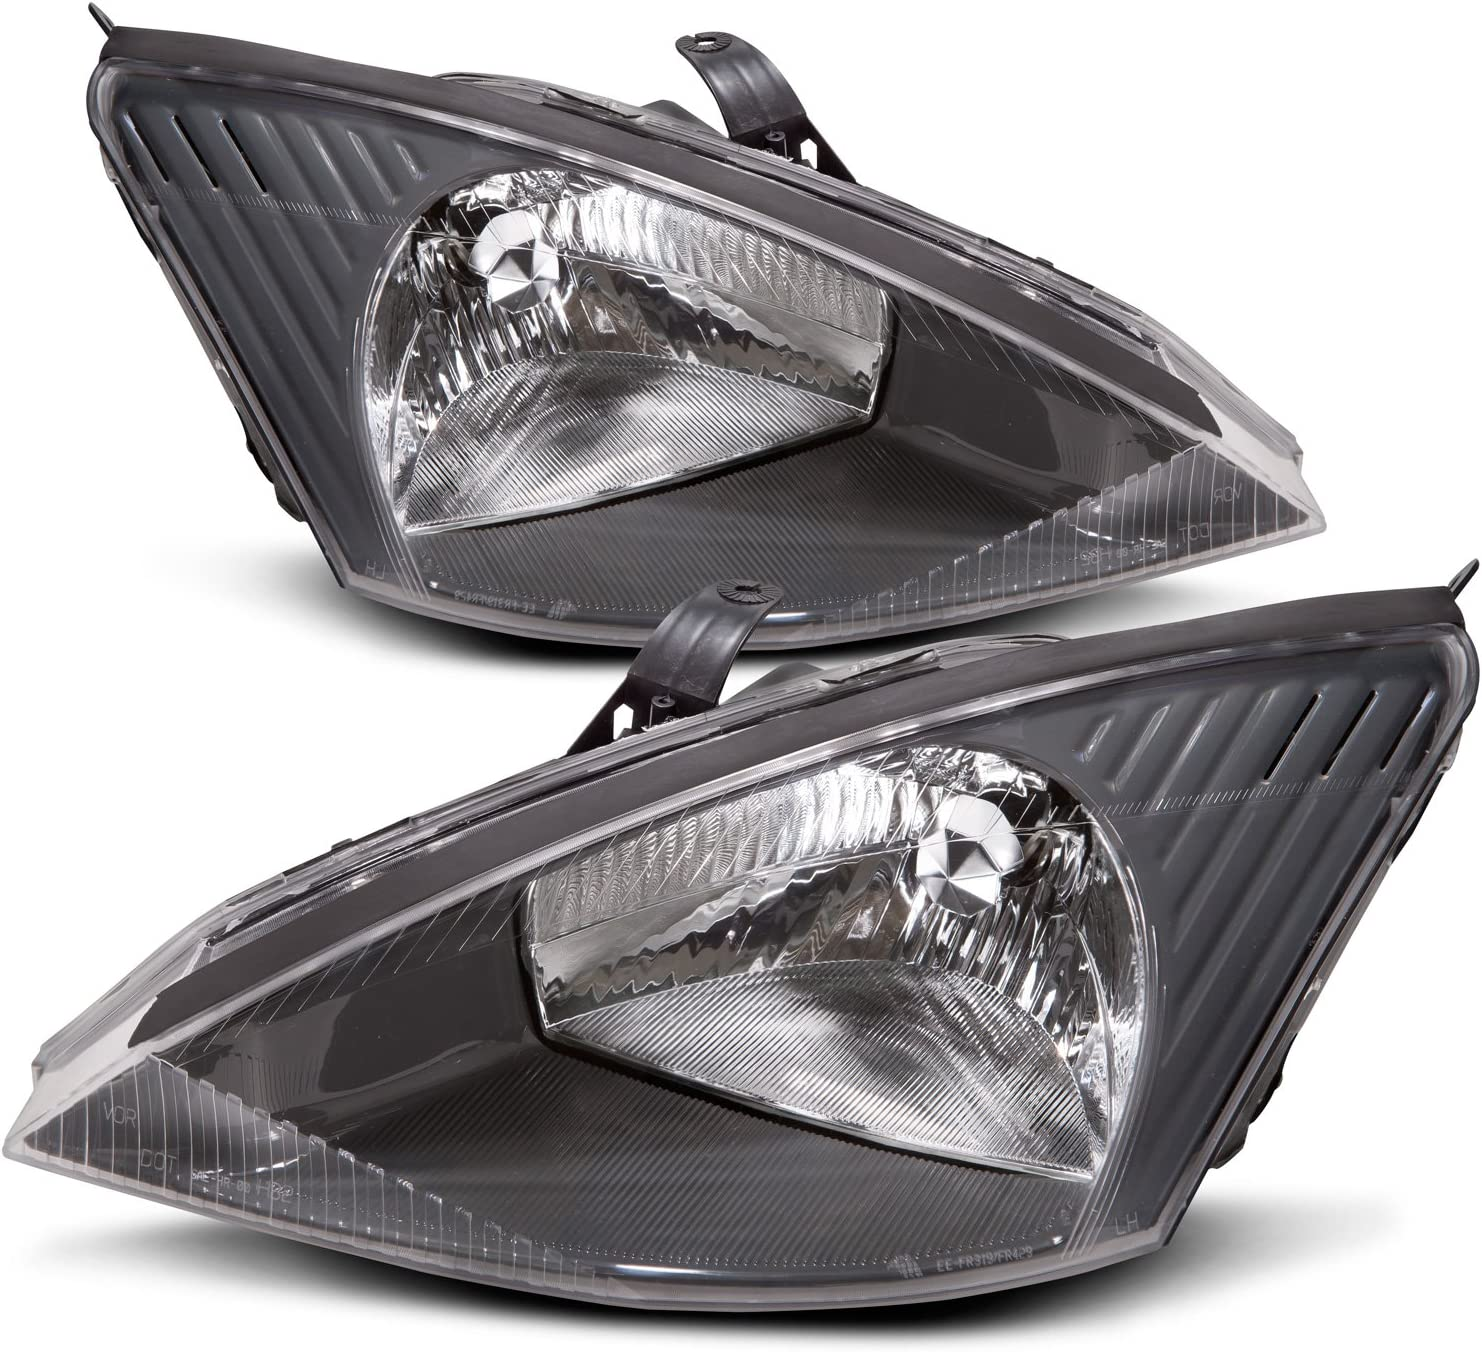 A-GRADE PAIR SET OF OEM FORD FOCUS 2012 2013 2014 HEADLIGHT ASSEMBLY